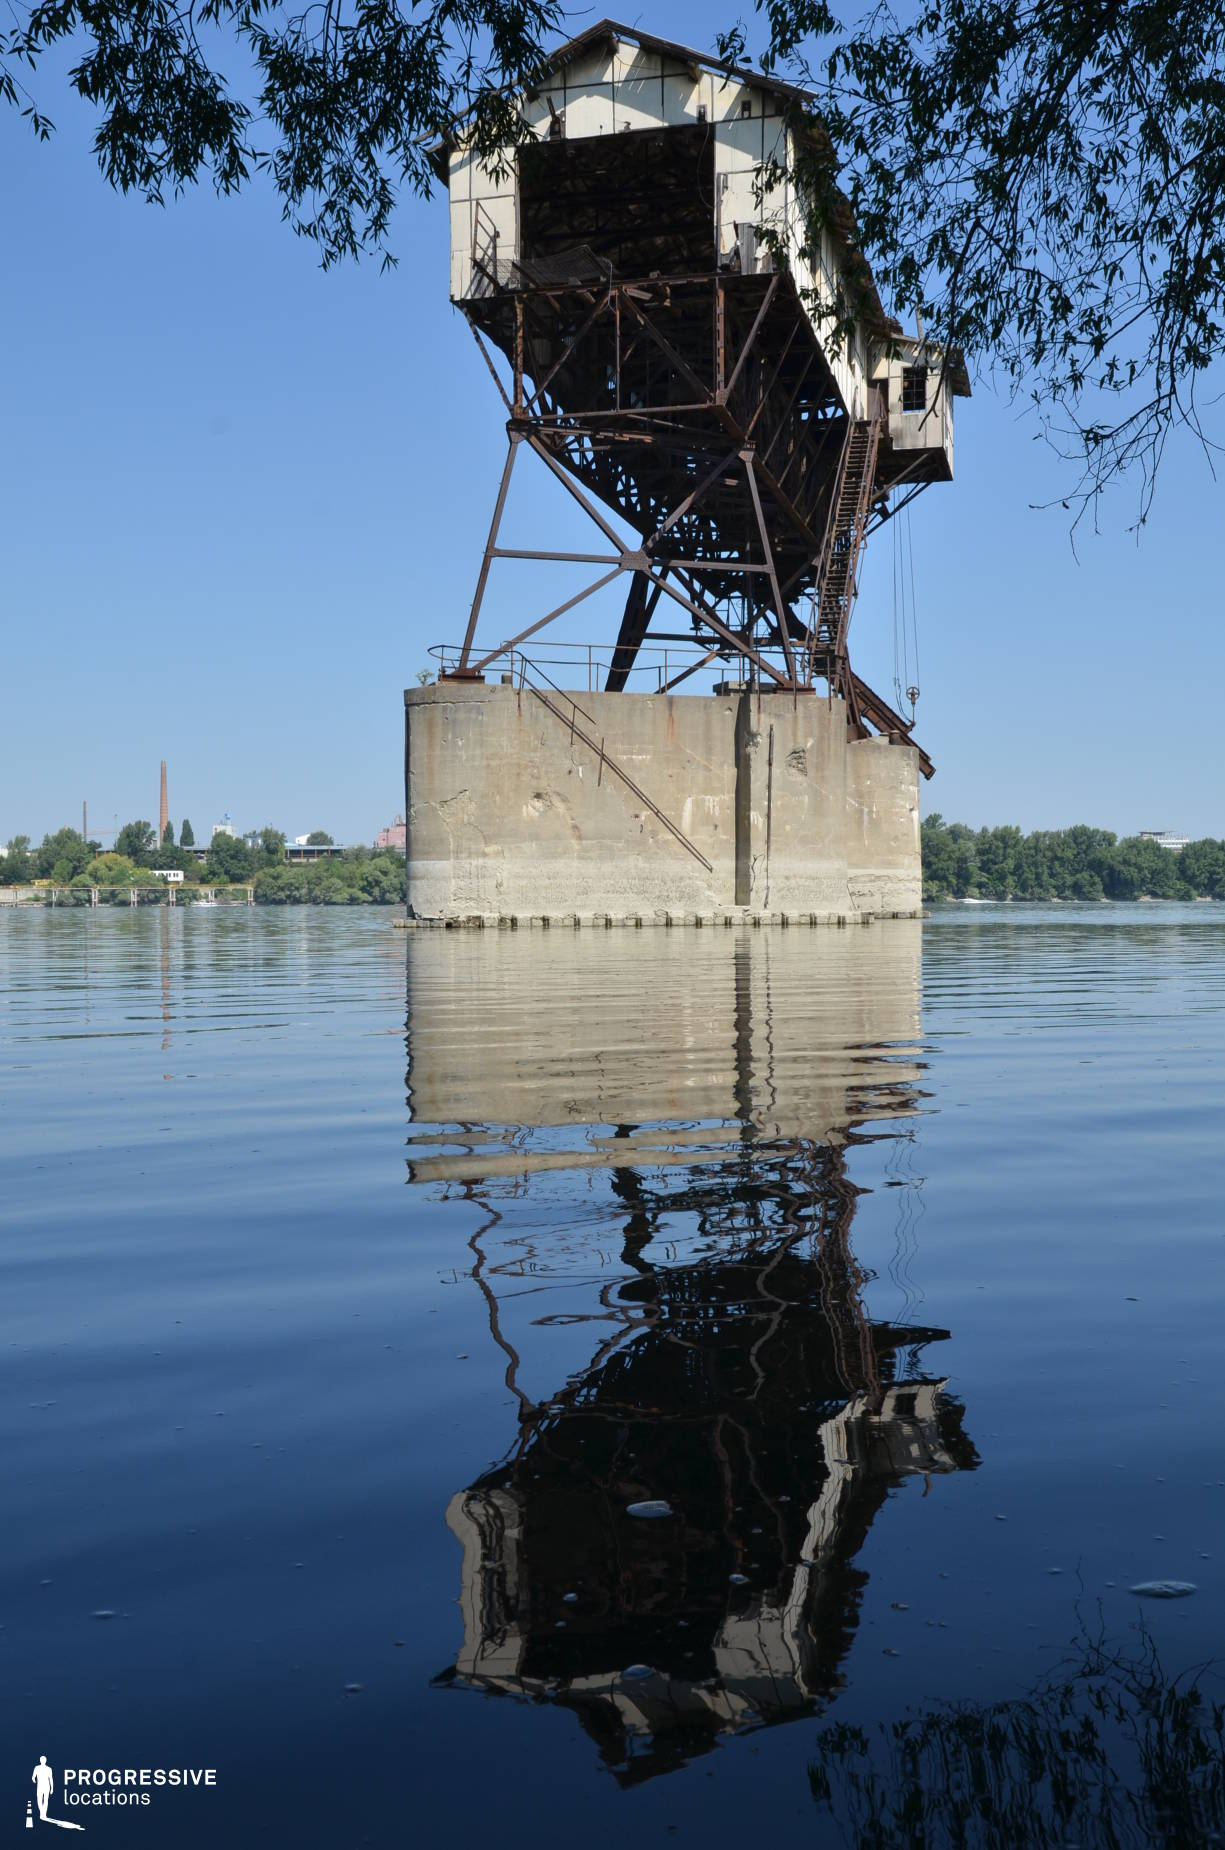 Locations in Hungary: Coal Loading Station, River Danube (Industrial Construction, Water Reflection)